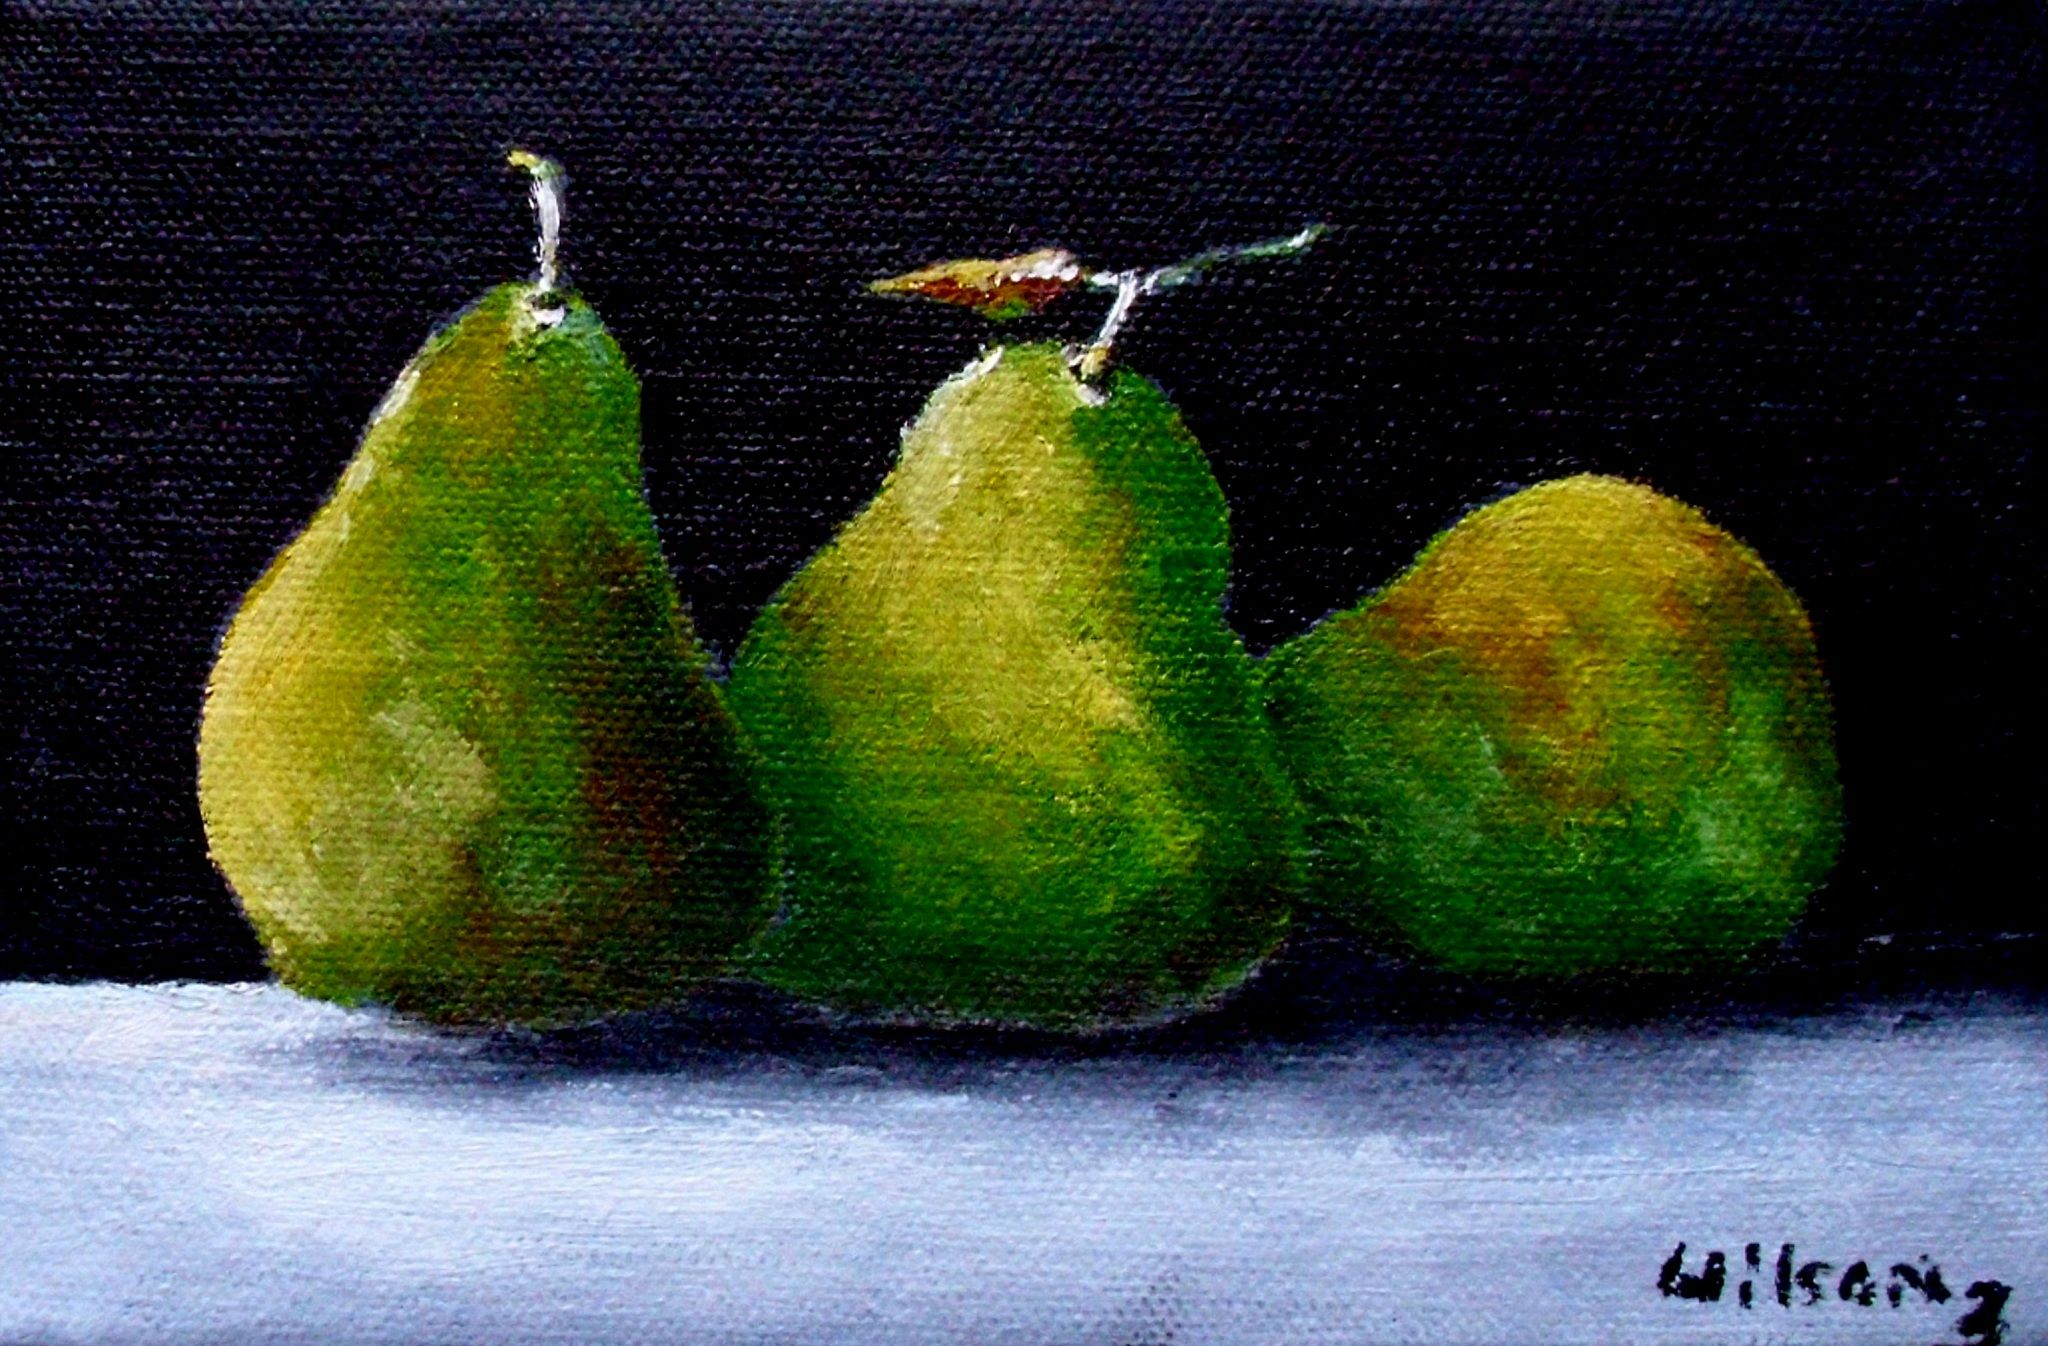 Tres peres by fred wilson 3 250 6w x 4h